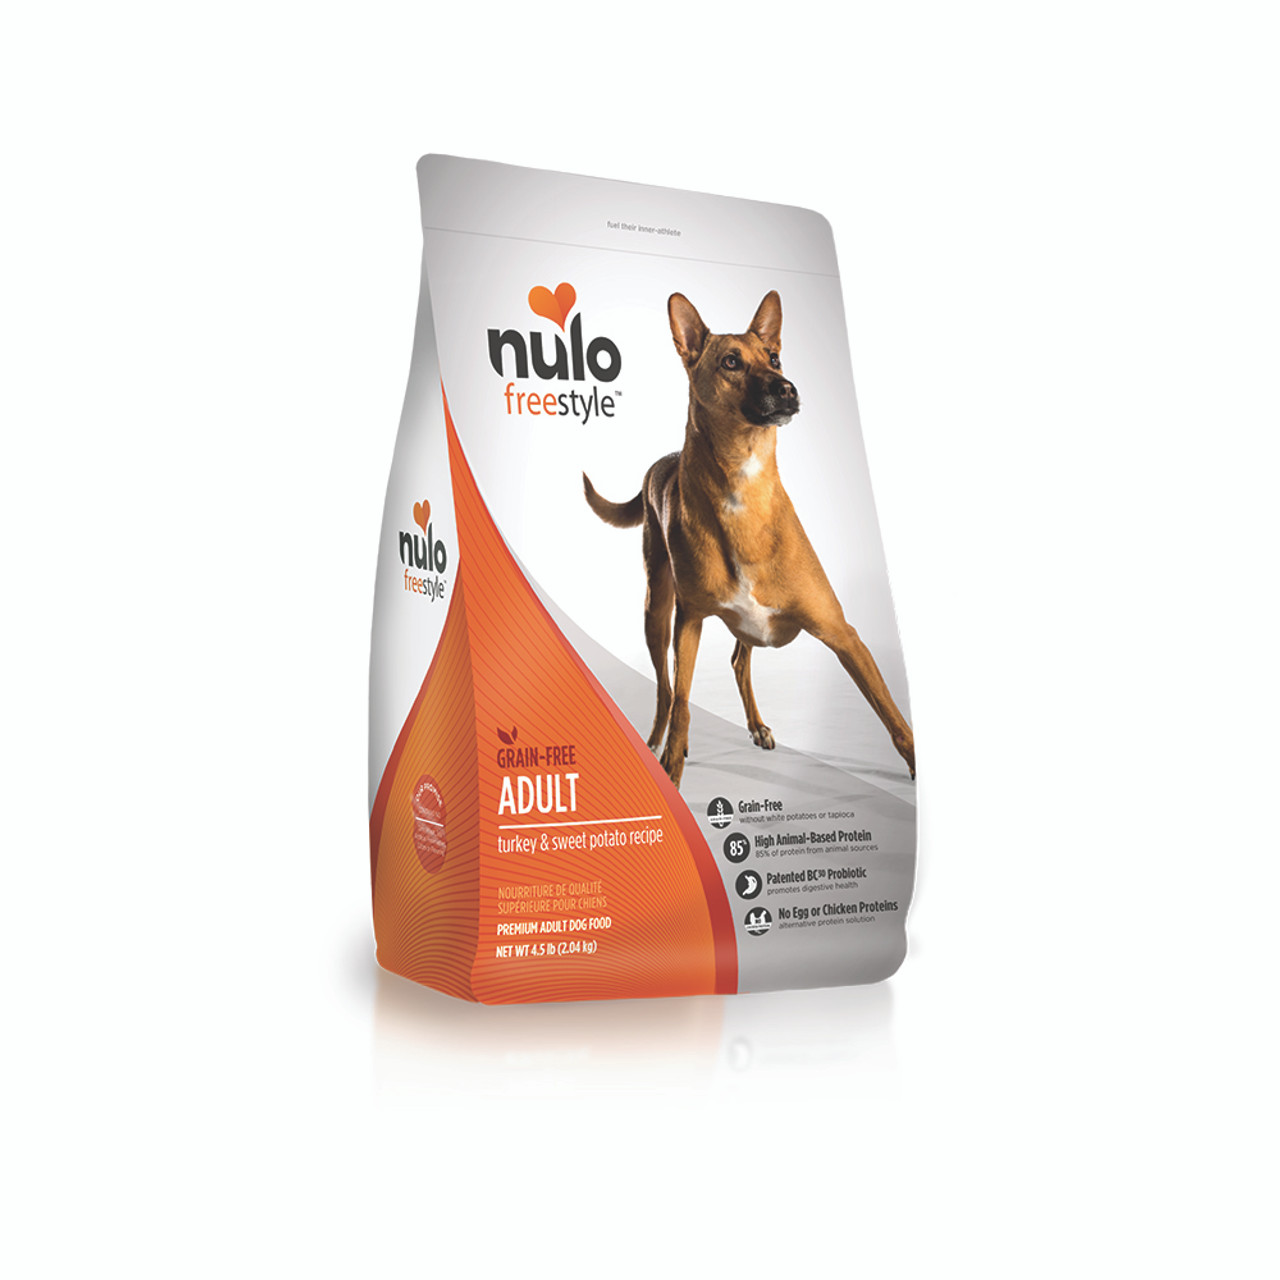 Nulo Freestyle Adult Turkey & Sweet Potato Dry Dog Food